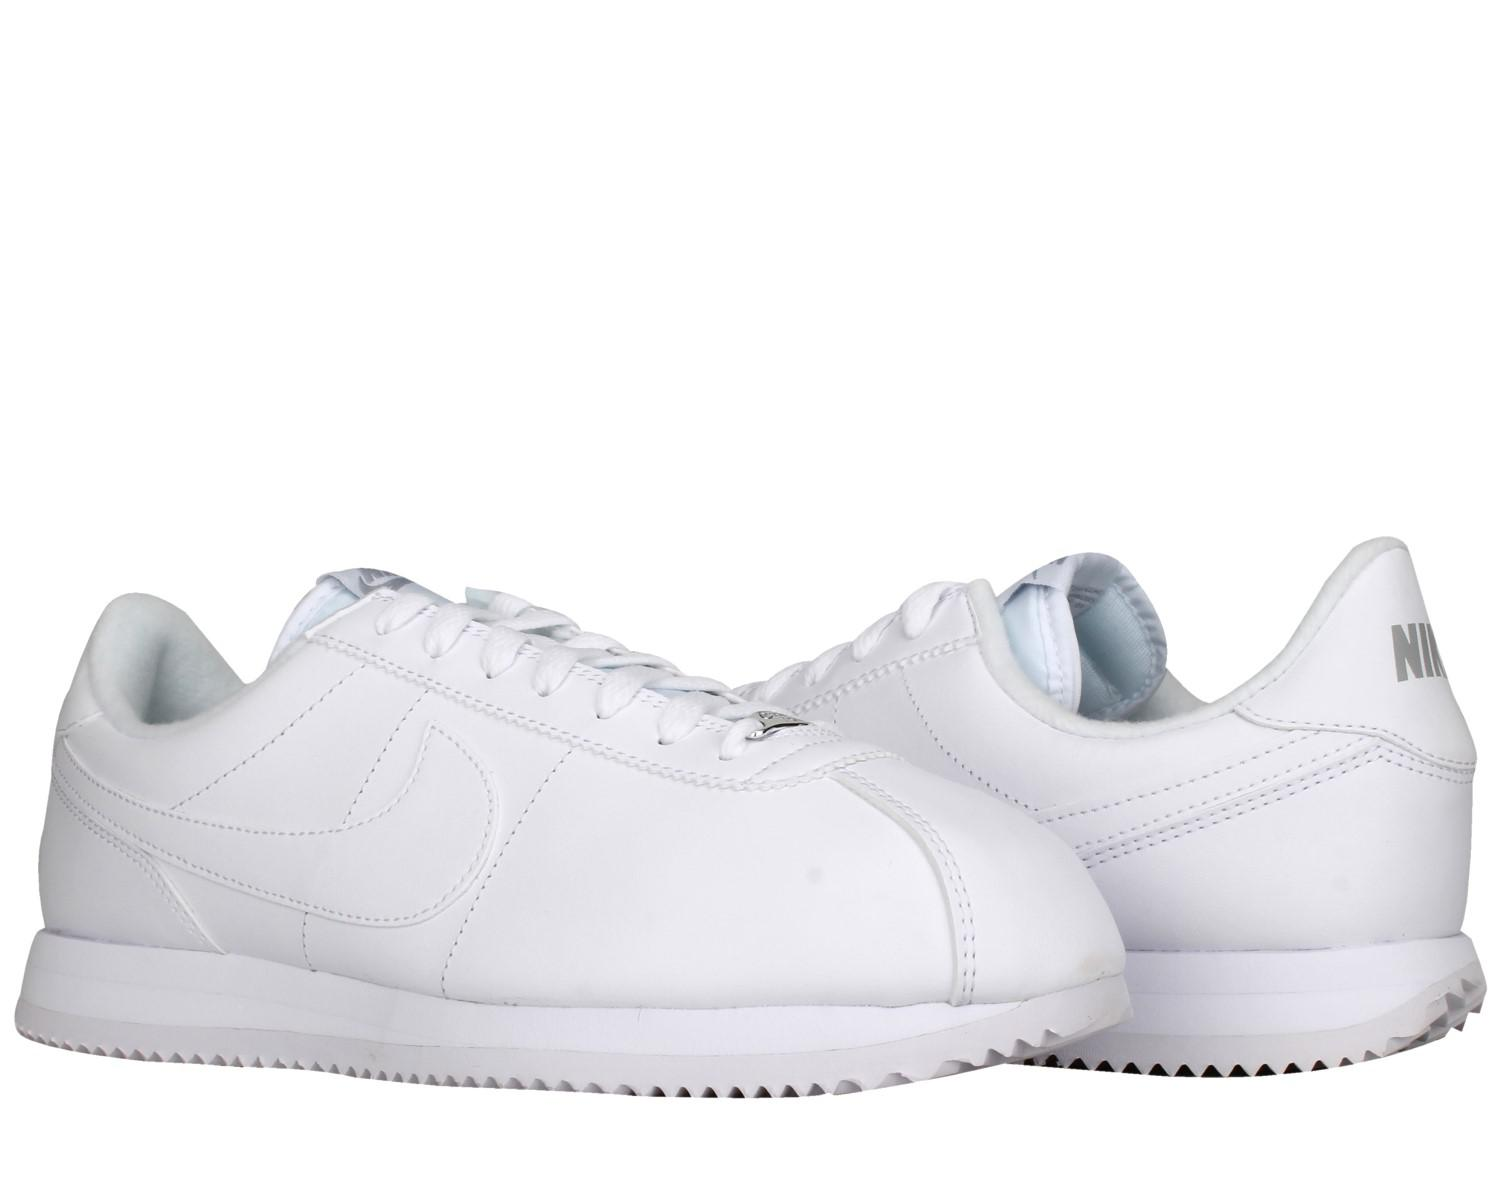 finest selection fbaa7 0ca49 Lyst - Nike Cortez Basic Leather Running Shoes 819719-110 10